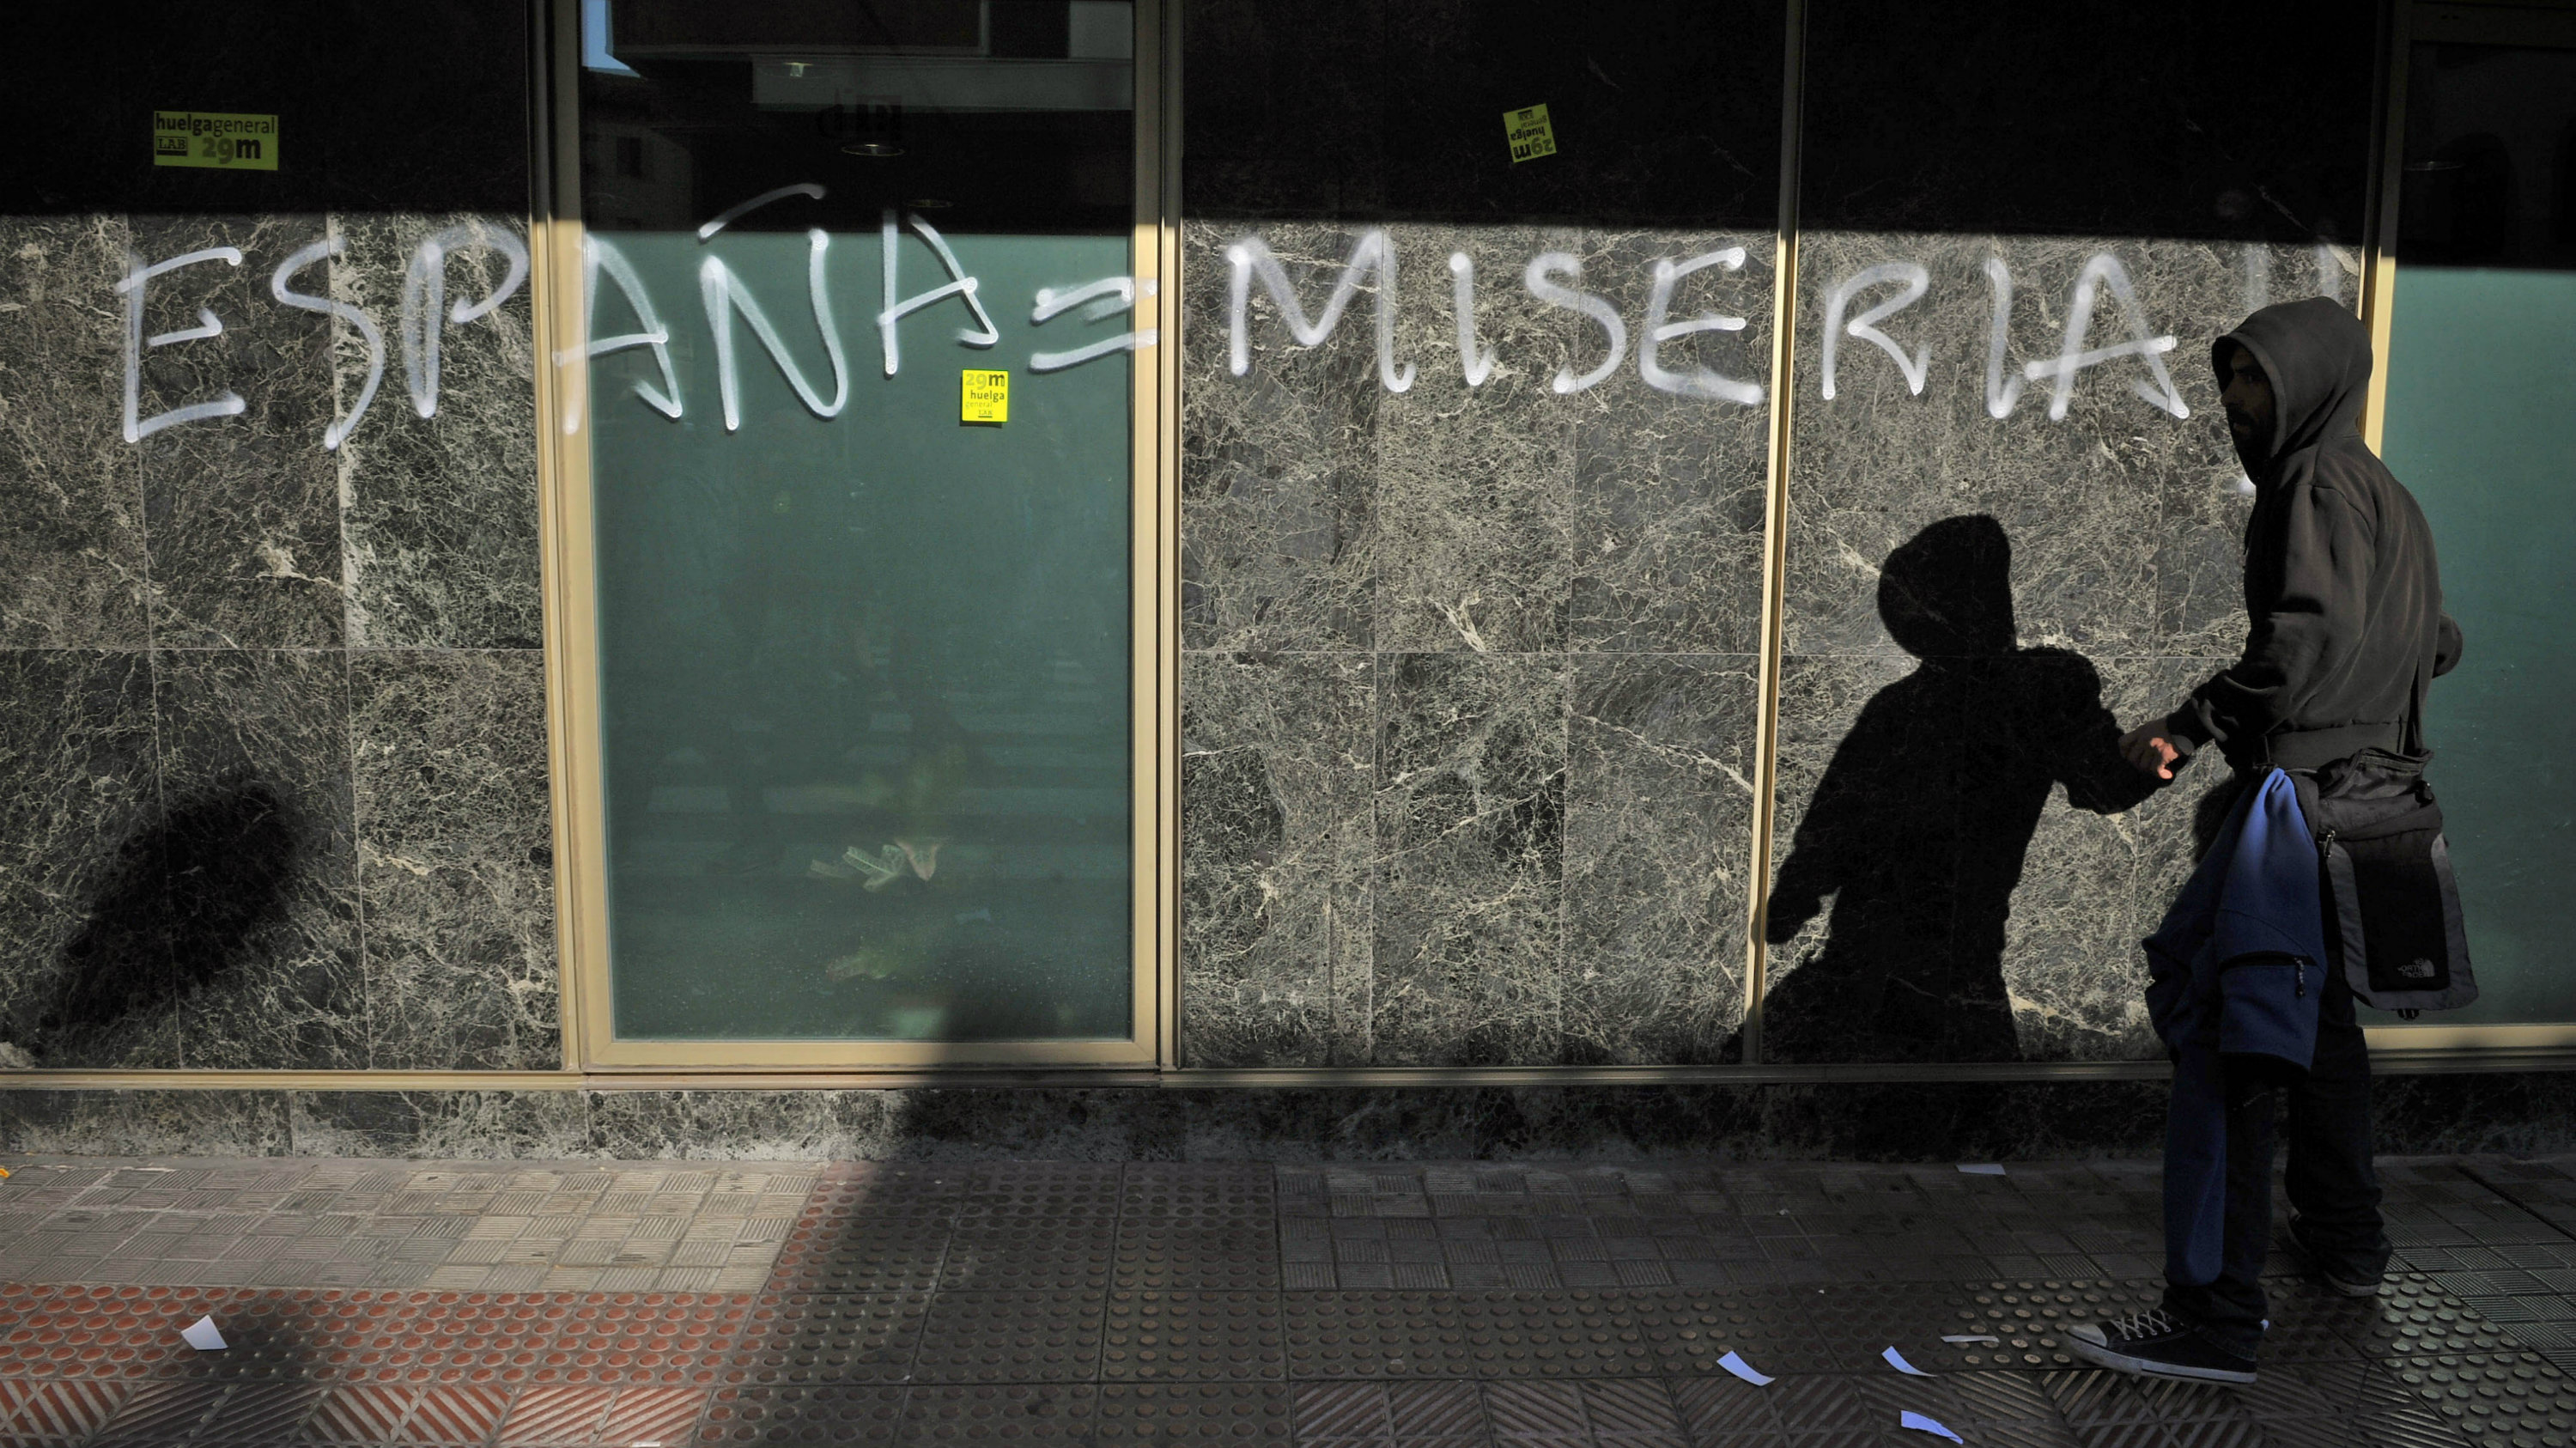 """A man in front of graffiti on a building in Spain reading """"España = Miseria"""""""